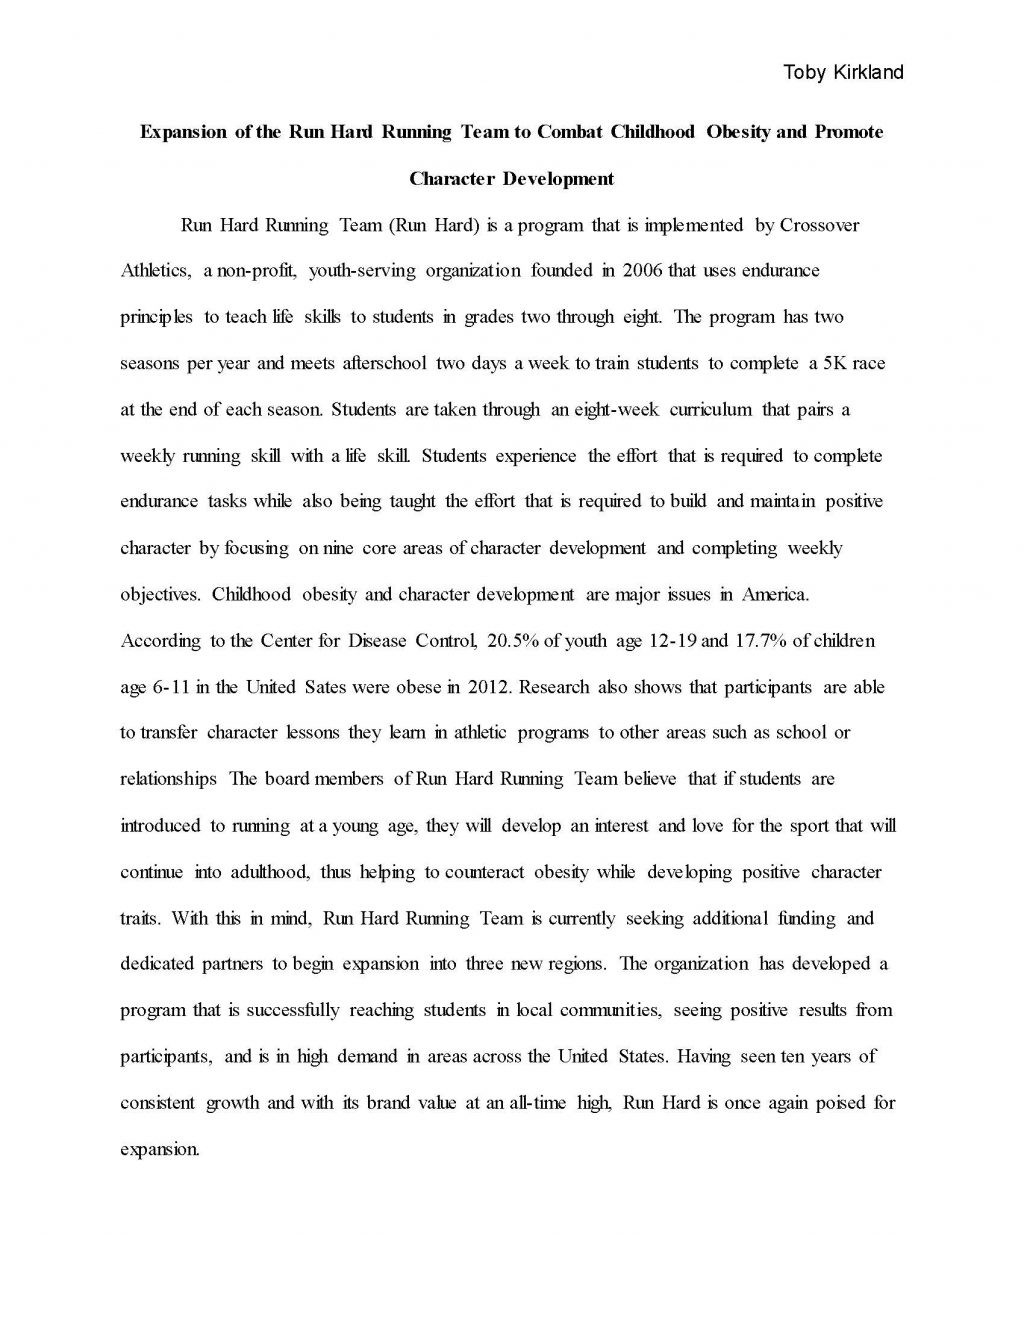 012 Childhood Obesity Research Paper Topics Essay Sample Barca Fontanacountryinn Com Child Example20 Awesome Articles Large